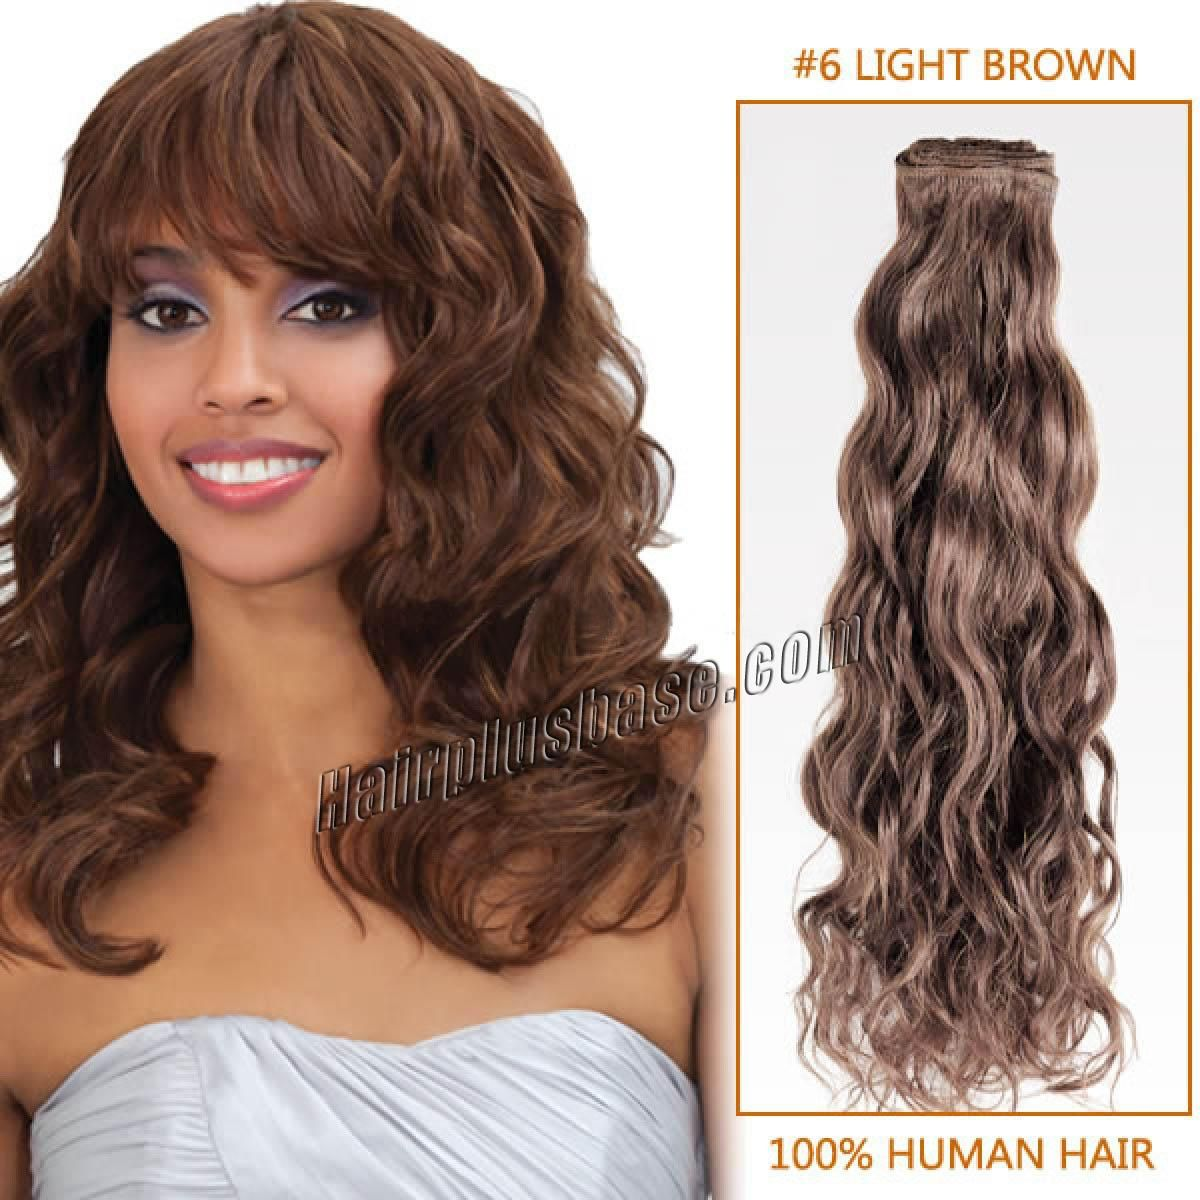 30 Inch 6 Light Brown Curly Indian Remy Hair Wefts Hair Weft